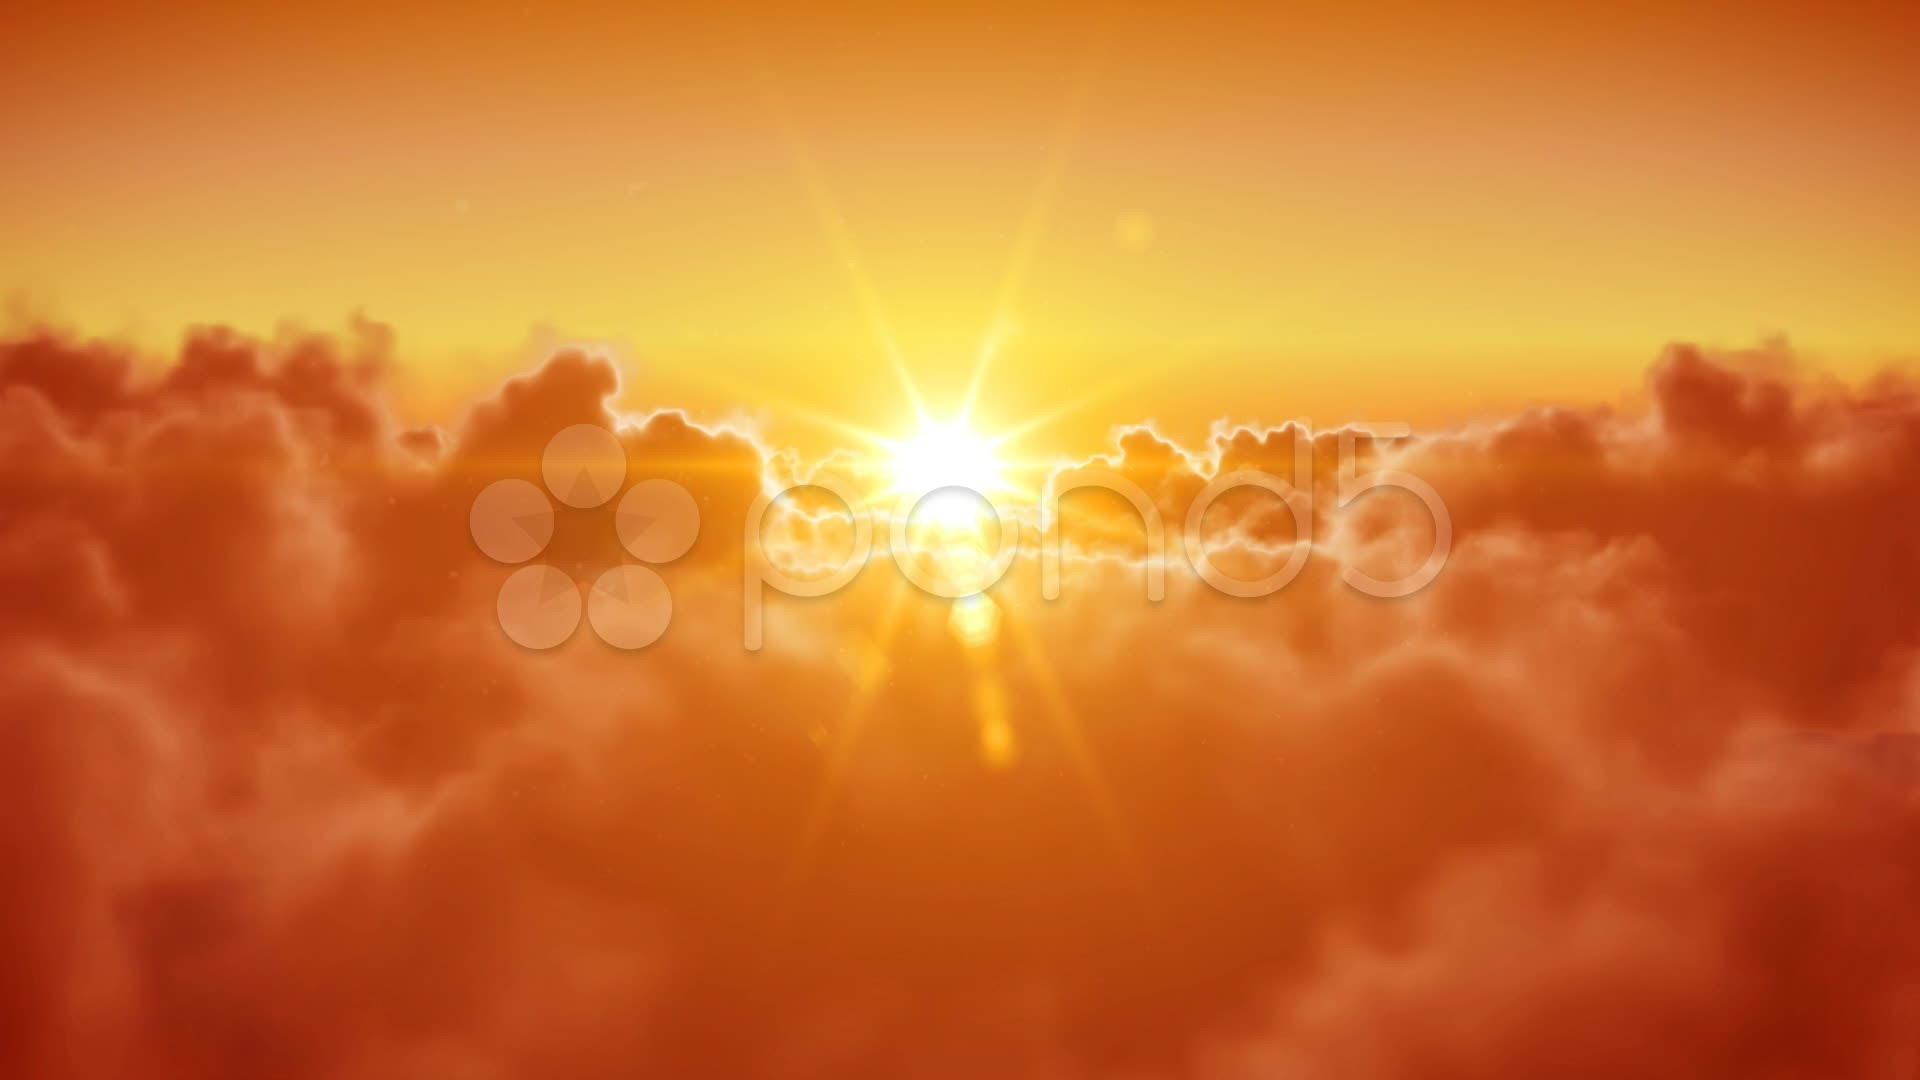 Good Morning Animation Wallpaper Free Animated Hd Sun Download Free Clip Art Free Clip